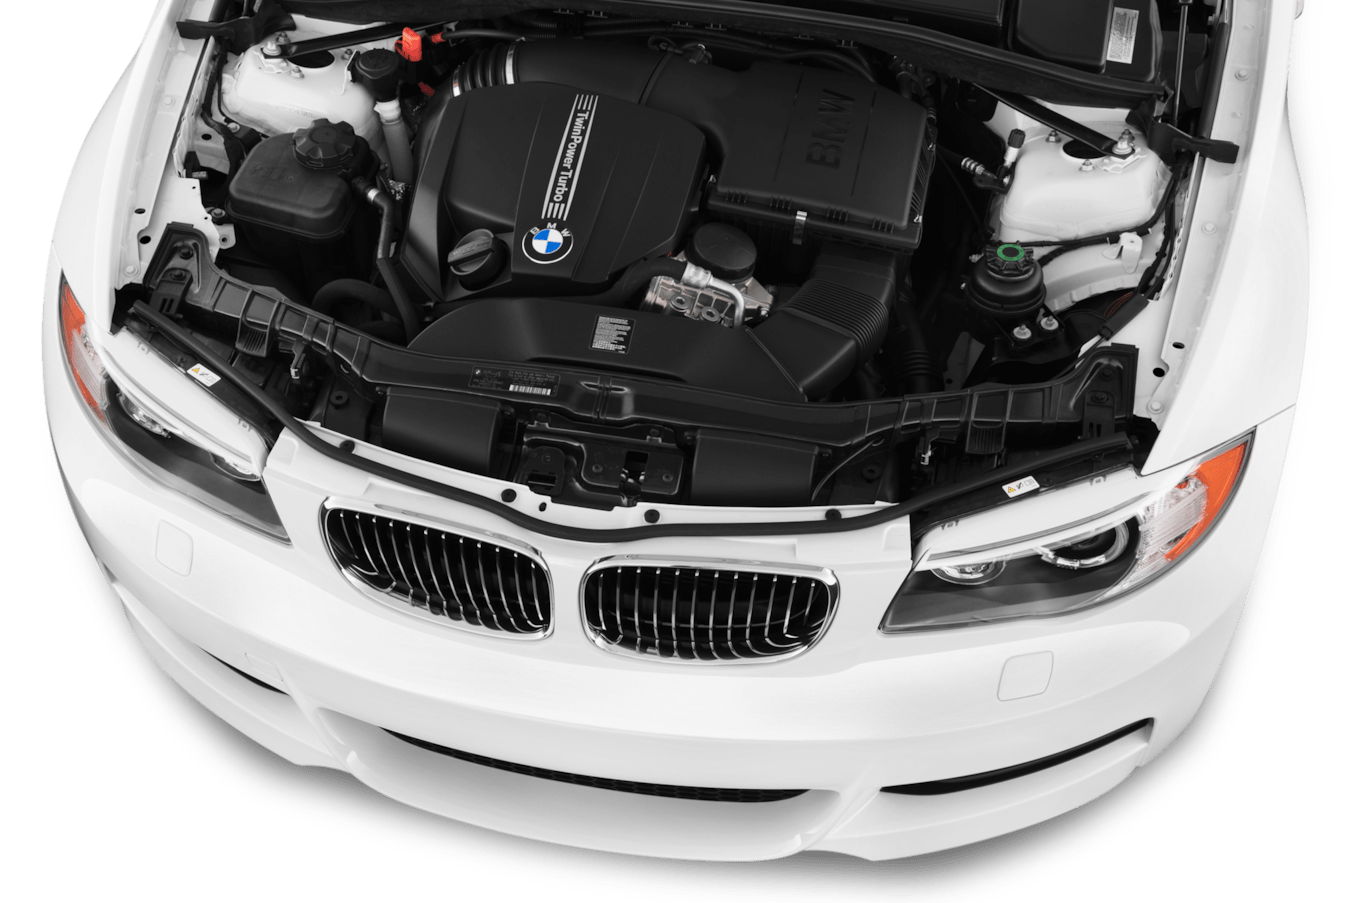 hight resolution of bmw 128i engine diagram wiring diagram centre 2012 bmw 1 series reviews research 1 series prices